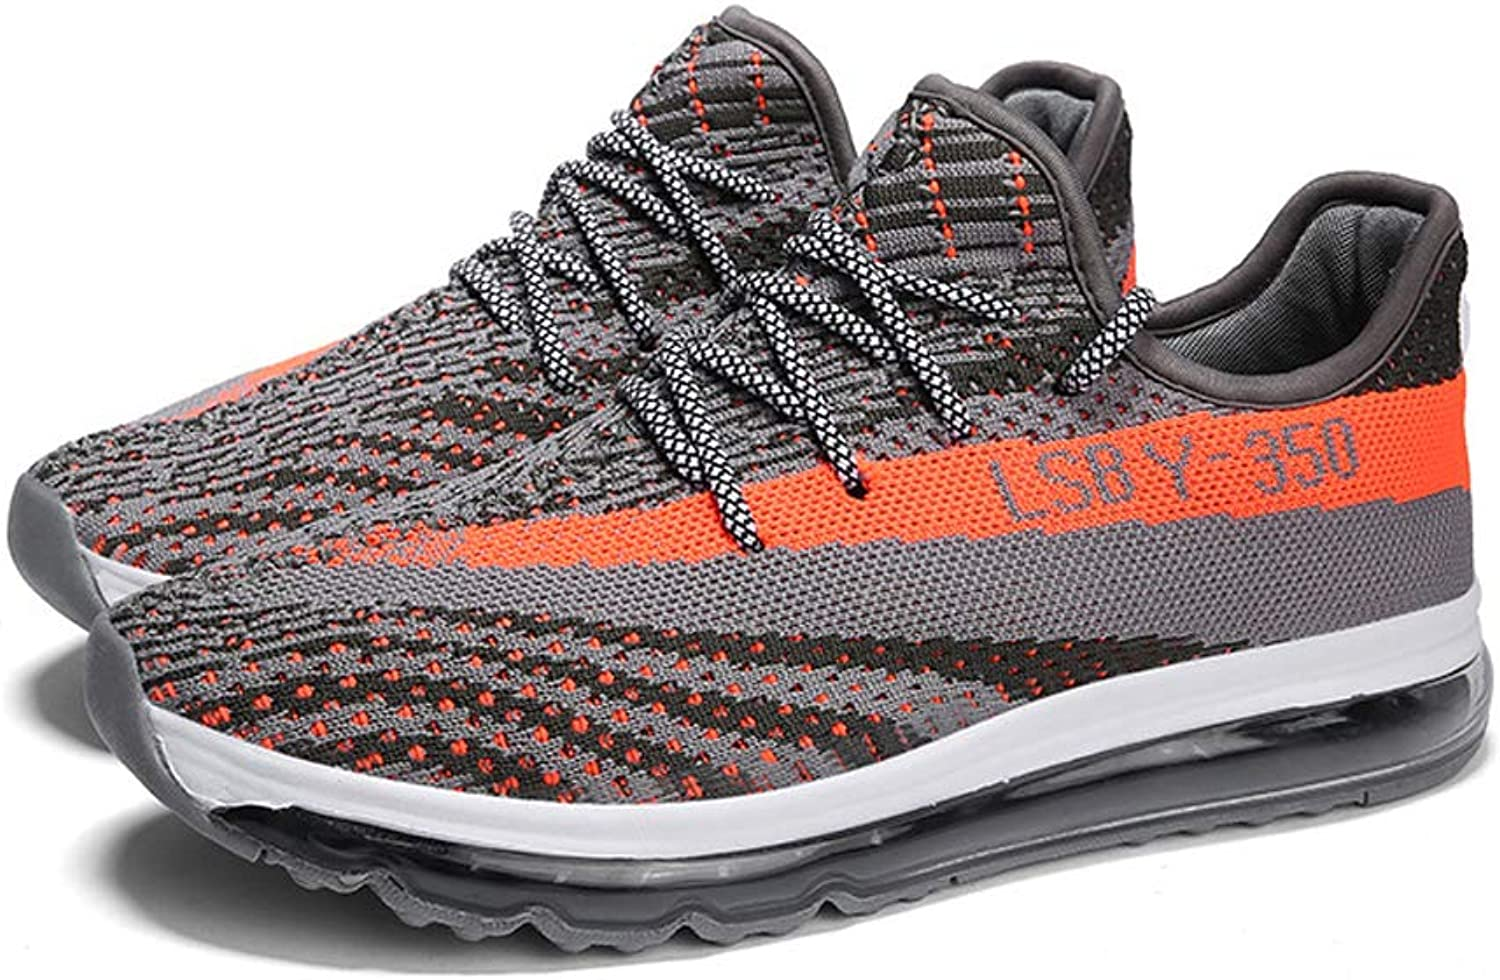 WGFGXQ Casual Men'S shoes, Breathable Lightweight Running shoes.